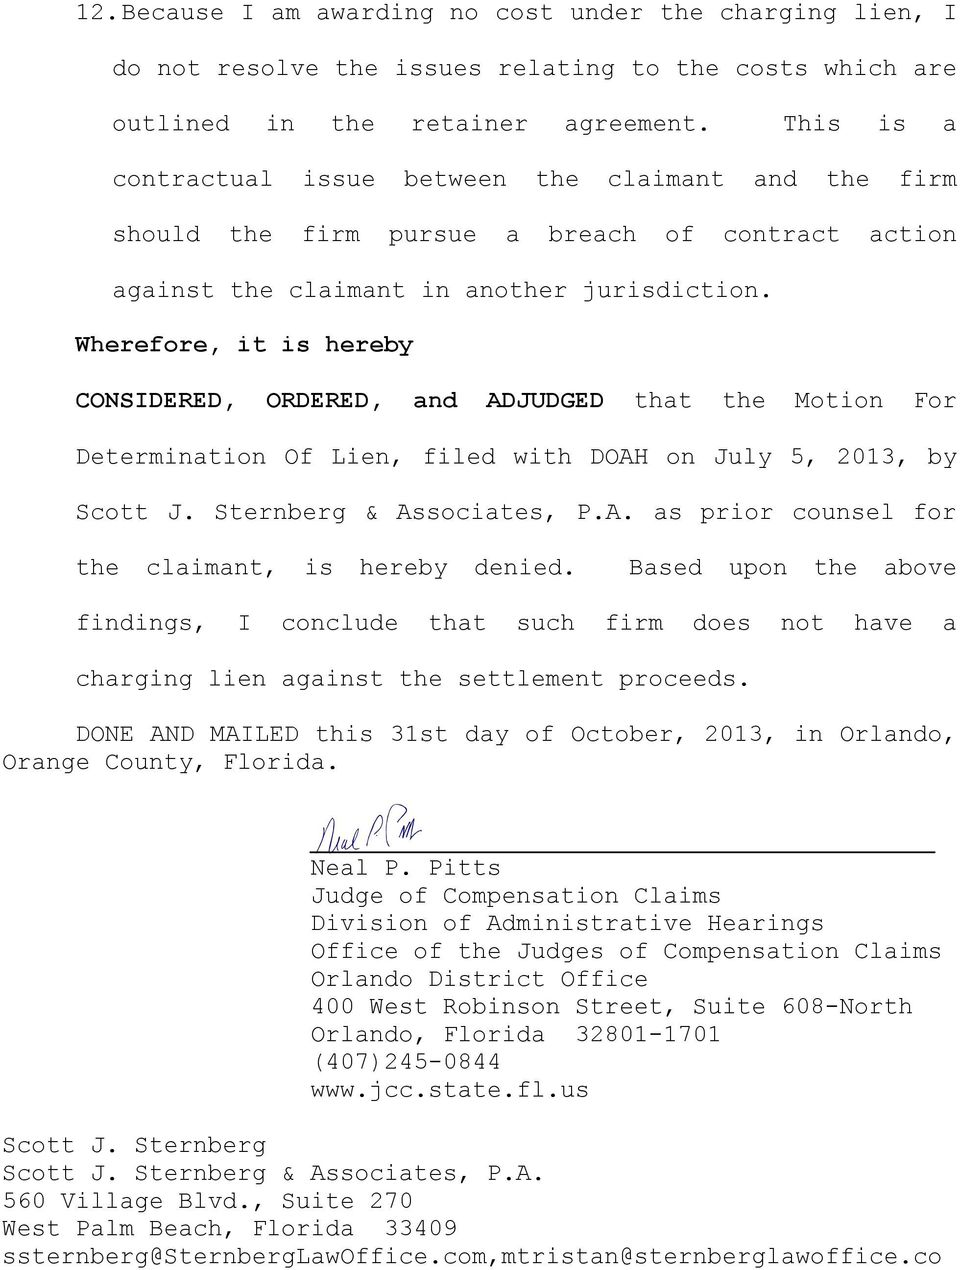 Wherefore, it is hereby CONSIDERED, ORDERED, and ADJUDGED that the Motion For Determination Of Lien, filed with DOAH on July 5, 2013, by Scott J. Sternberg & Associates, P.A. as prior counsel for the claimant, is hereby denied.